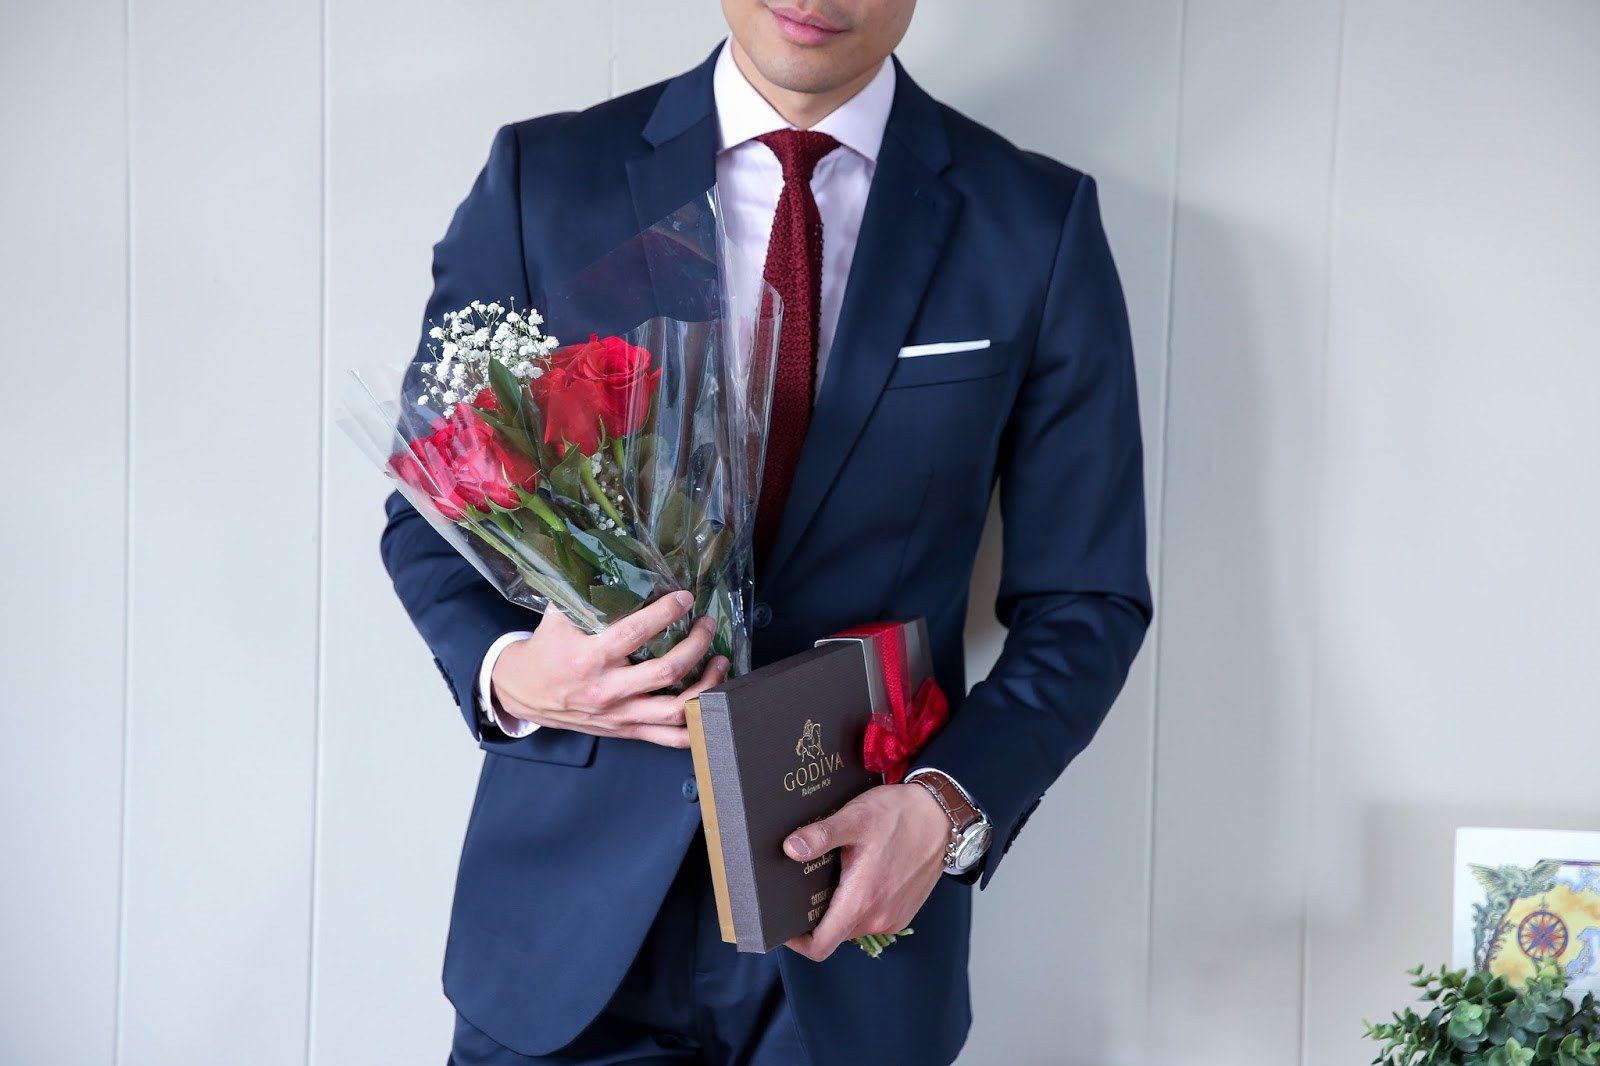 Perry Ellis Navy Suit for Valentine's Day, Roses and Godiva Chocolate Menswear outfit